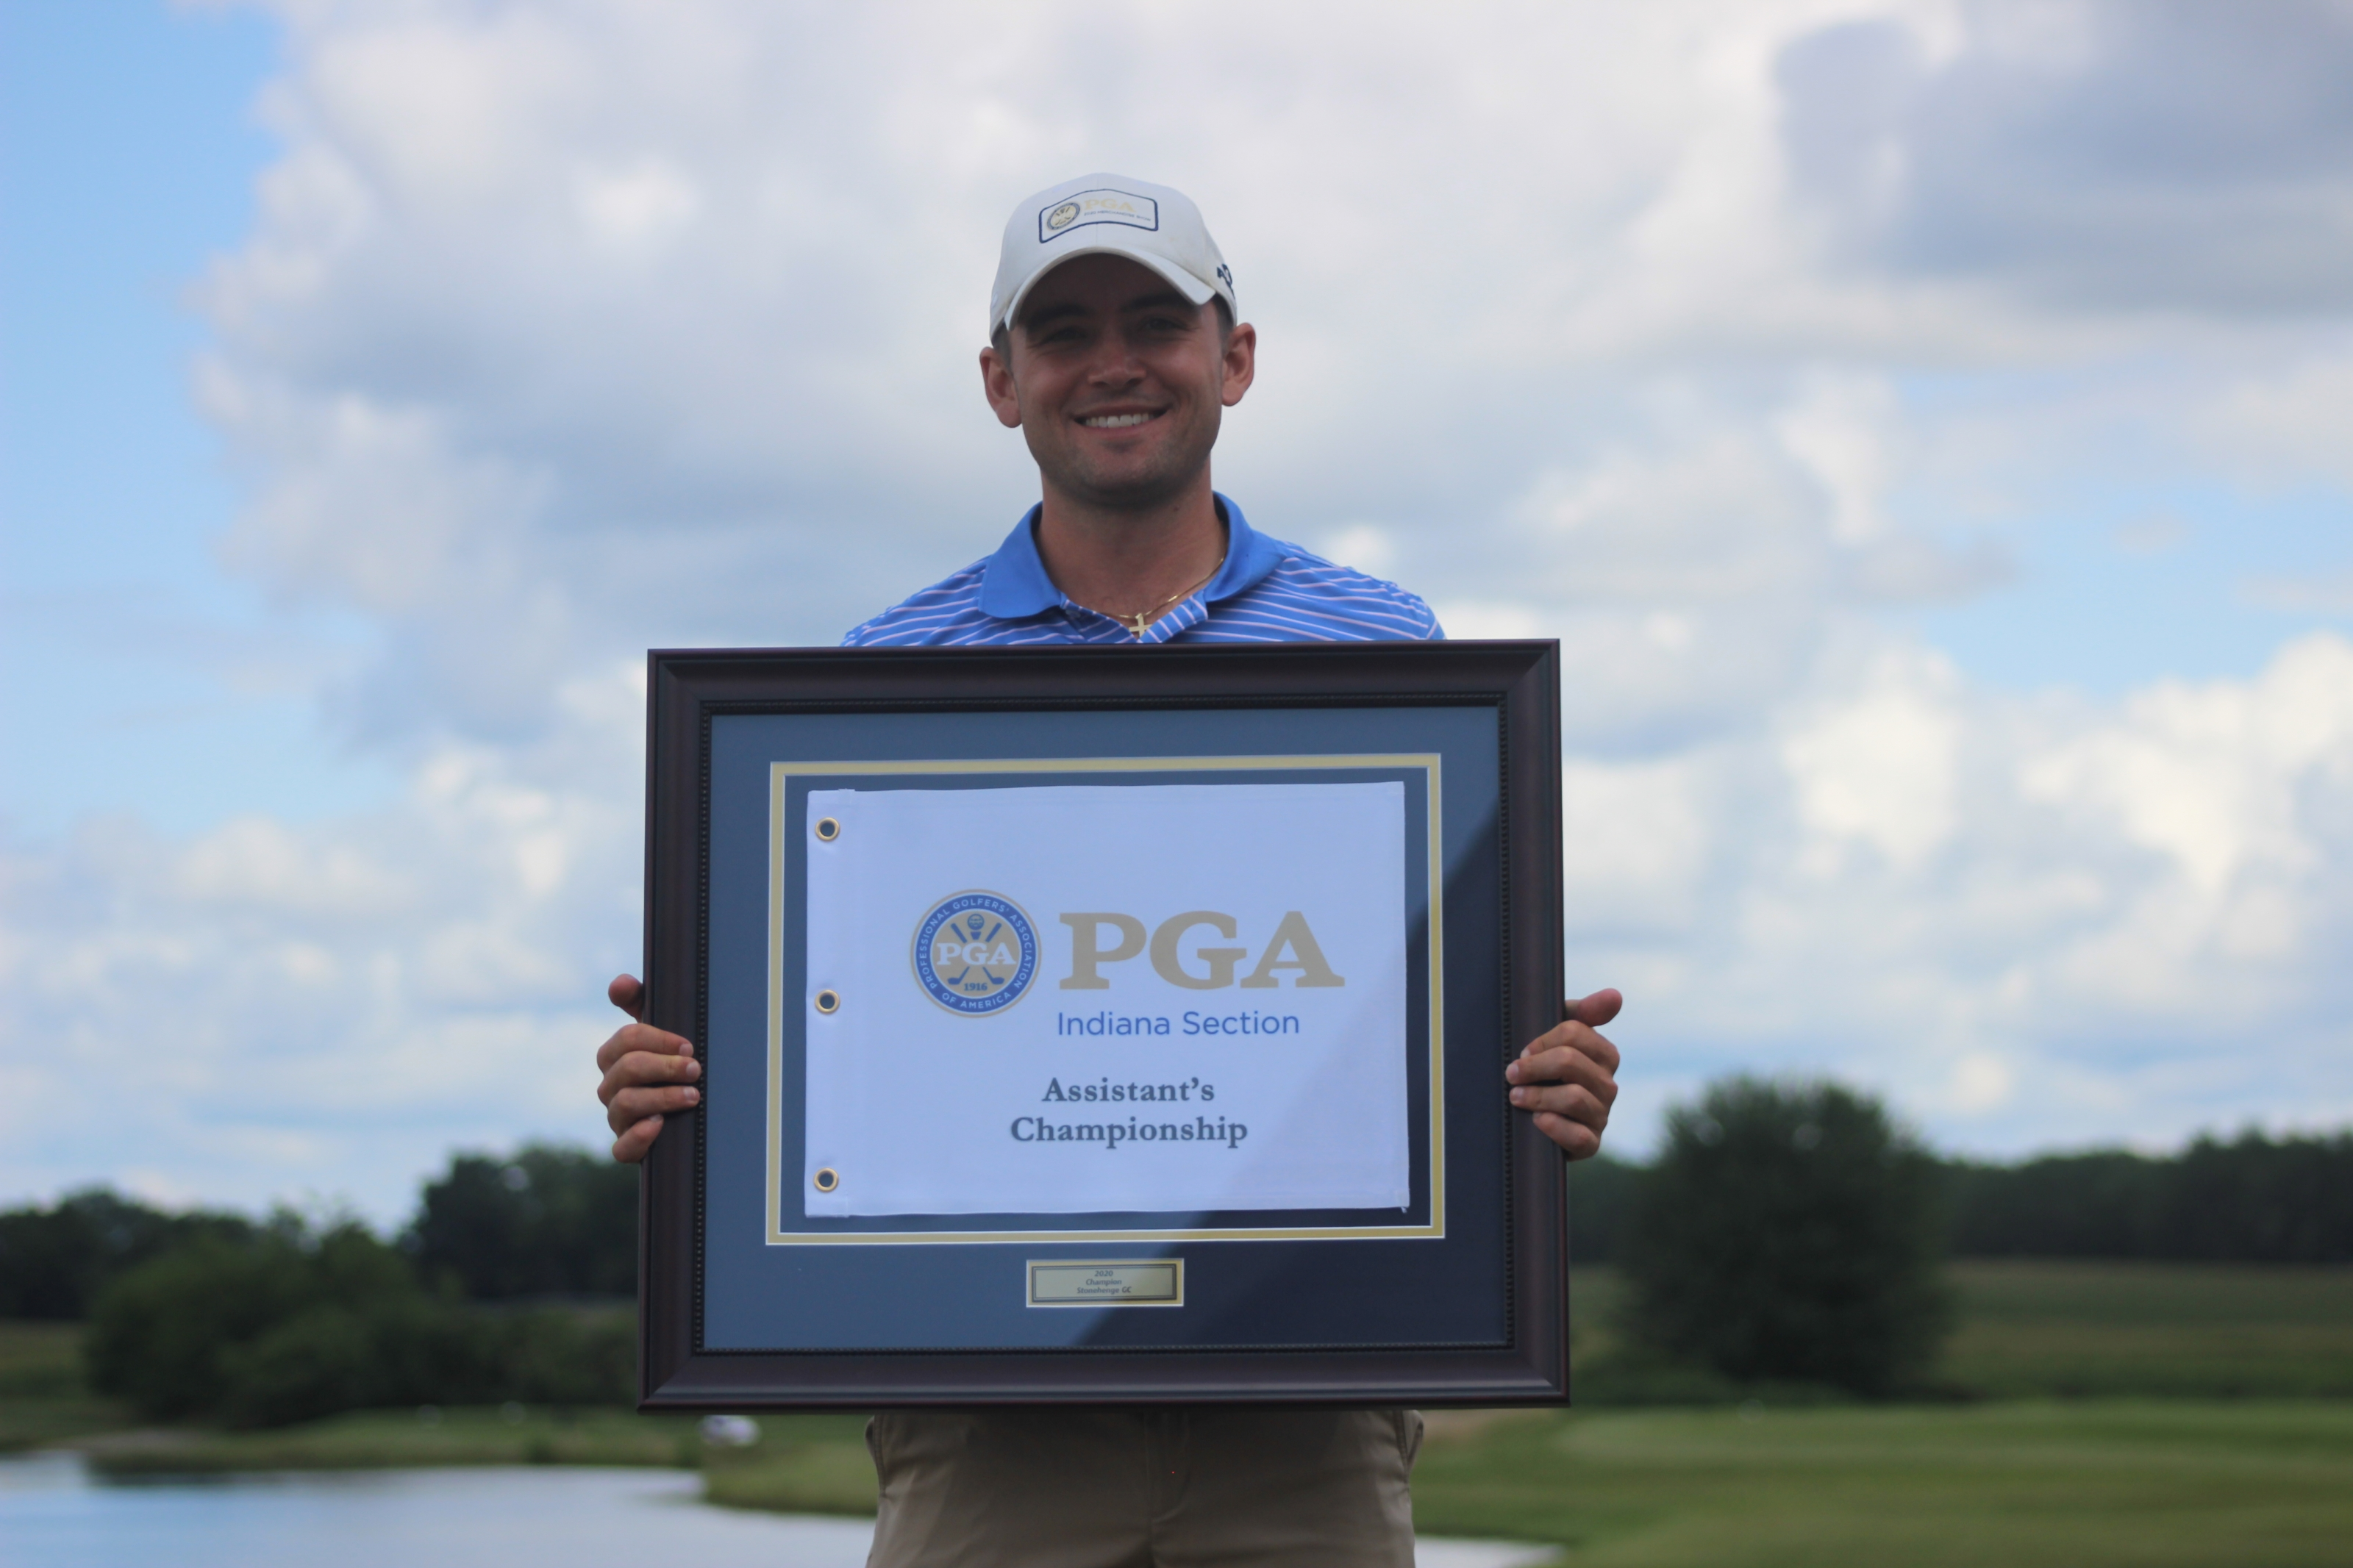 Timothy Wiseman Captures First PGA Title